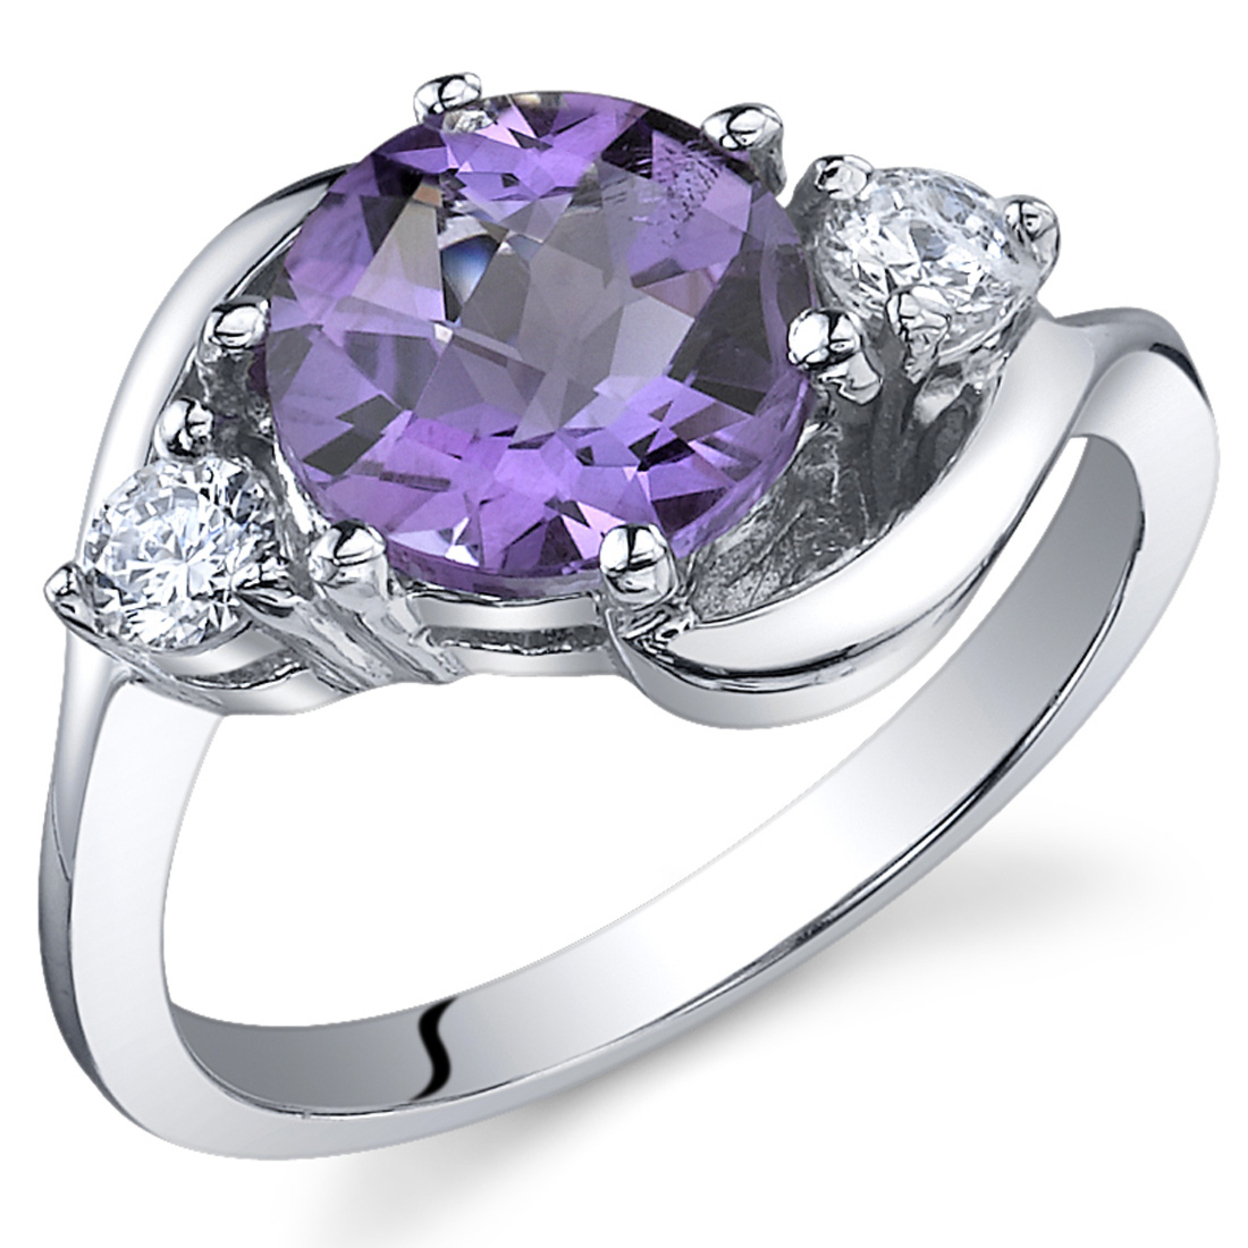 Oravo 1.75 Ct 3 Stone Amethyst Ring In Rhodium-plated Sterling Silver, Sizes 5-9